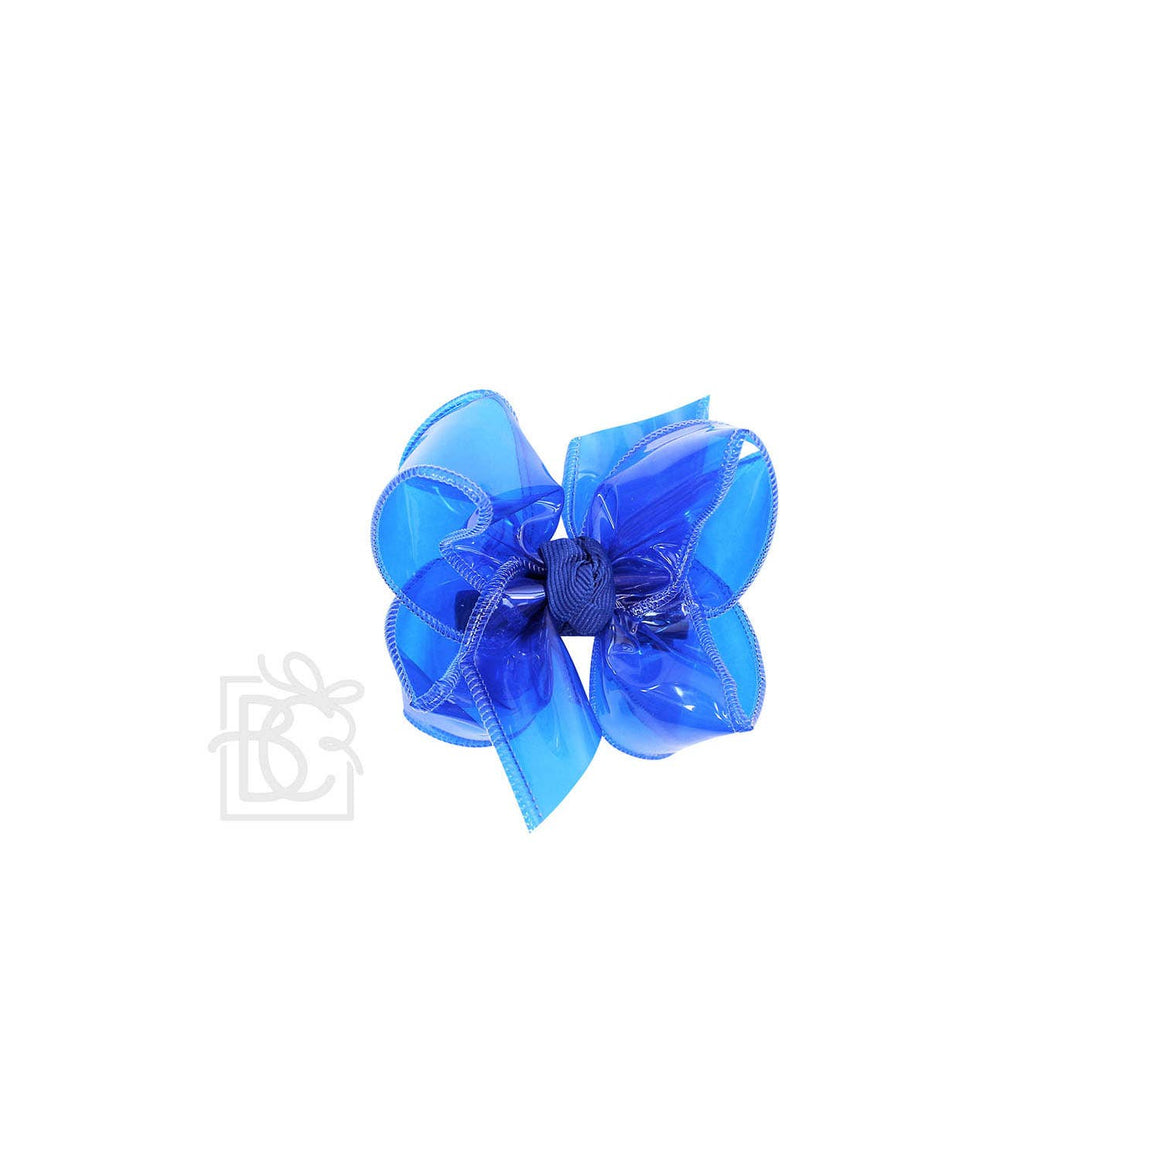 "4"" Waterproof Hair Bow on Clip 